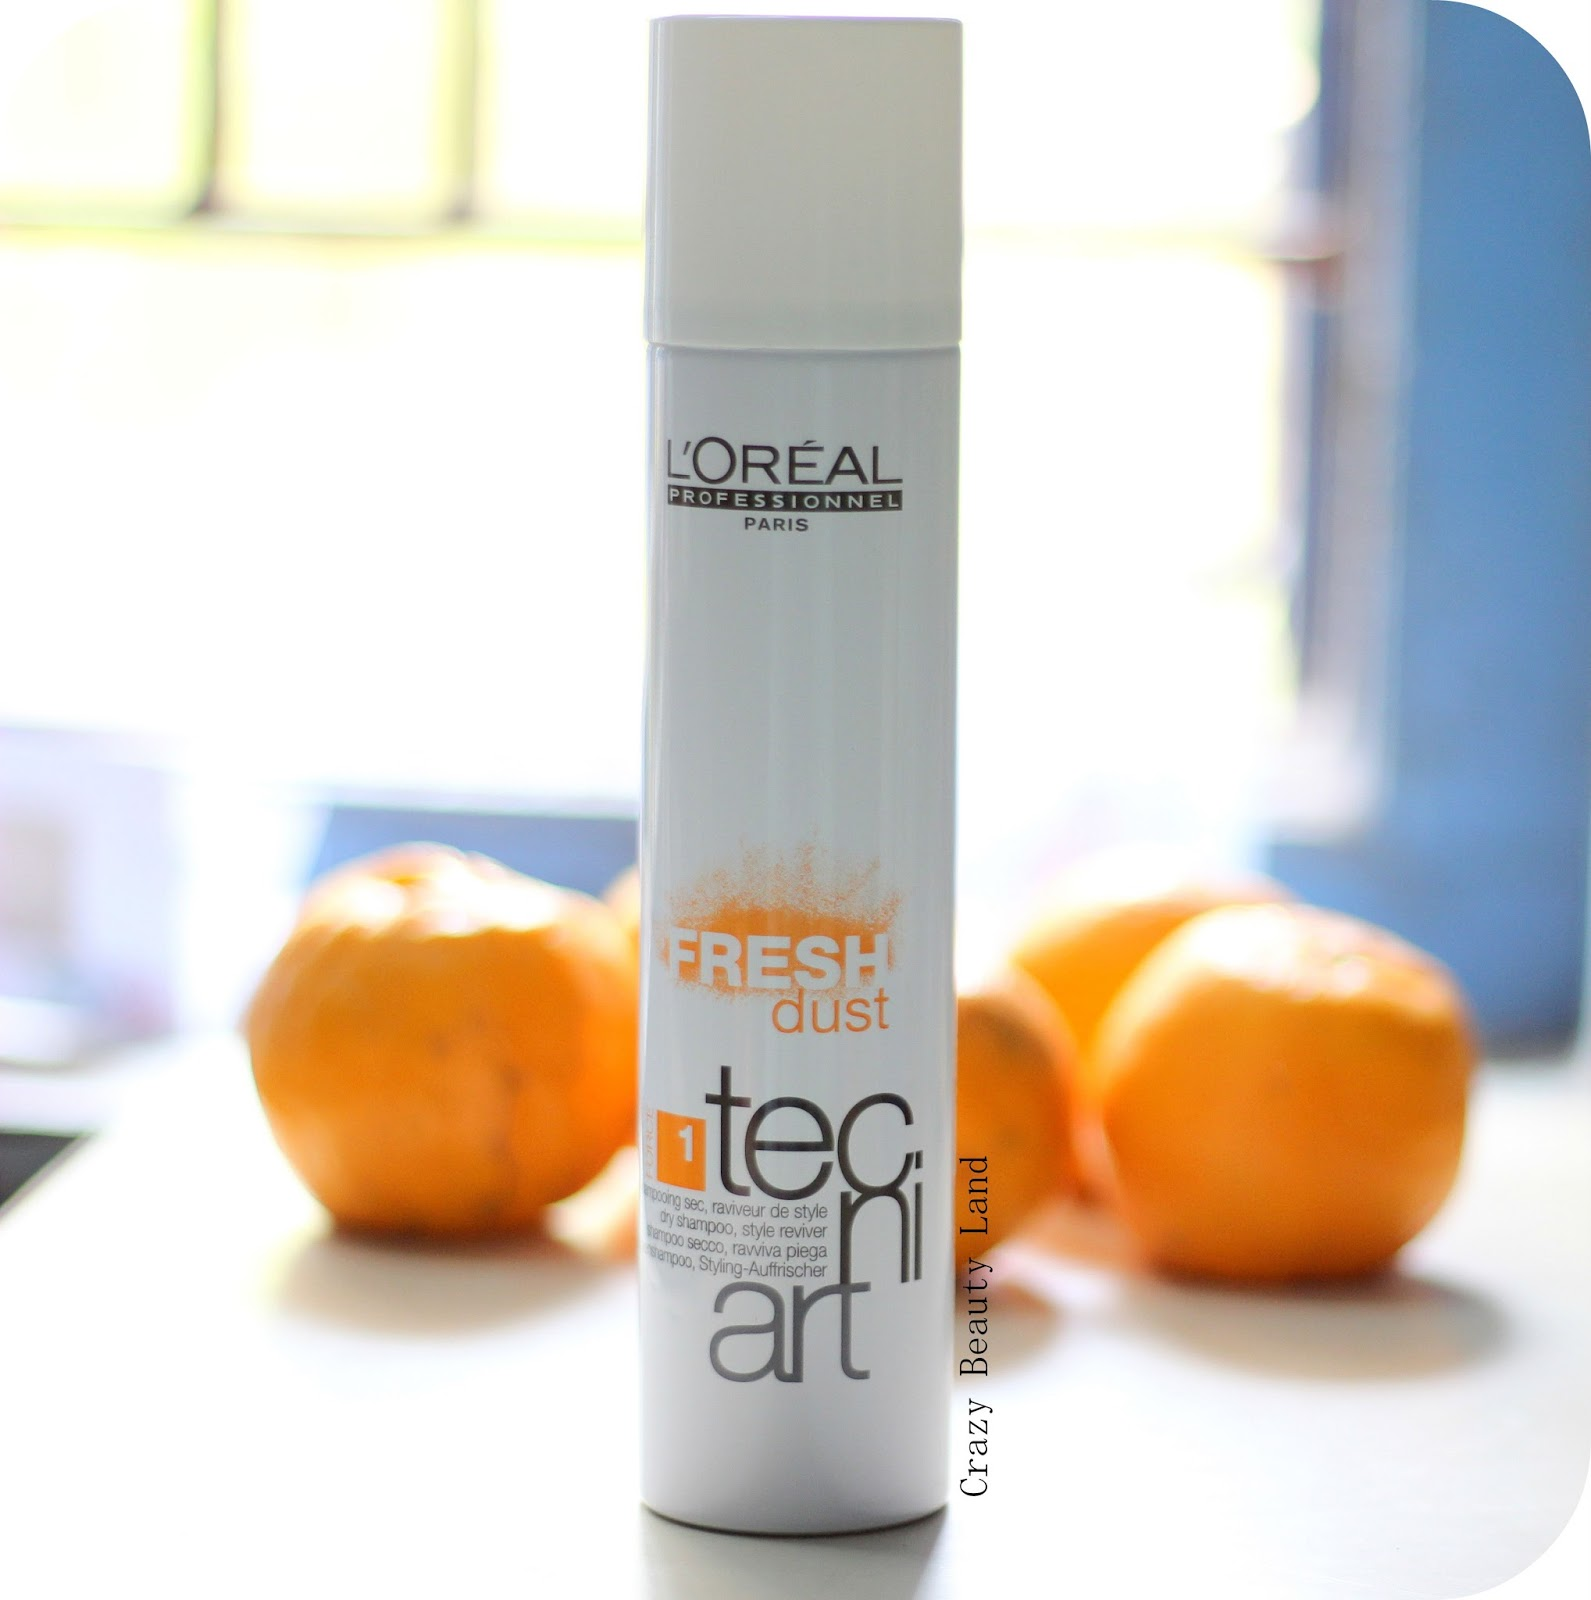 L'Oreal Techni Art Fresh Dust Dry Shampoo Review